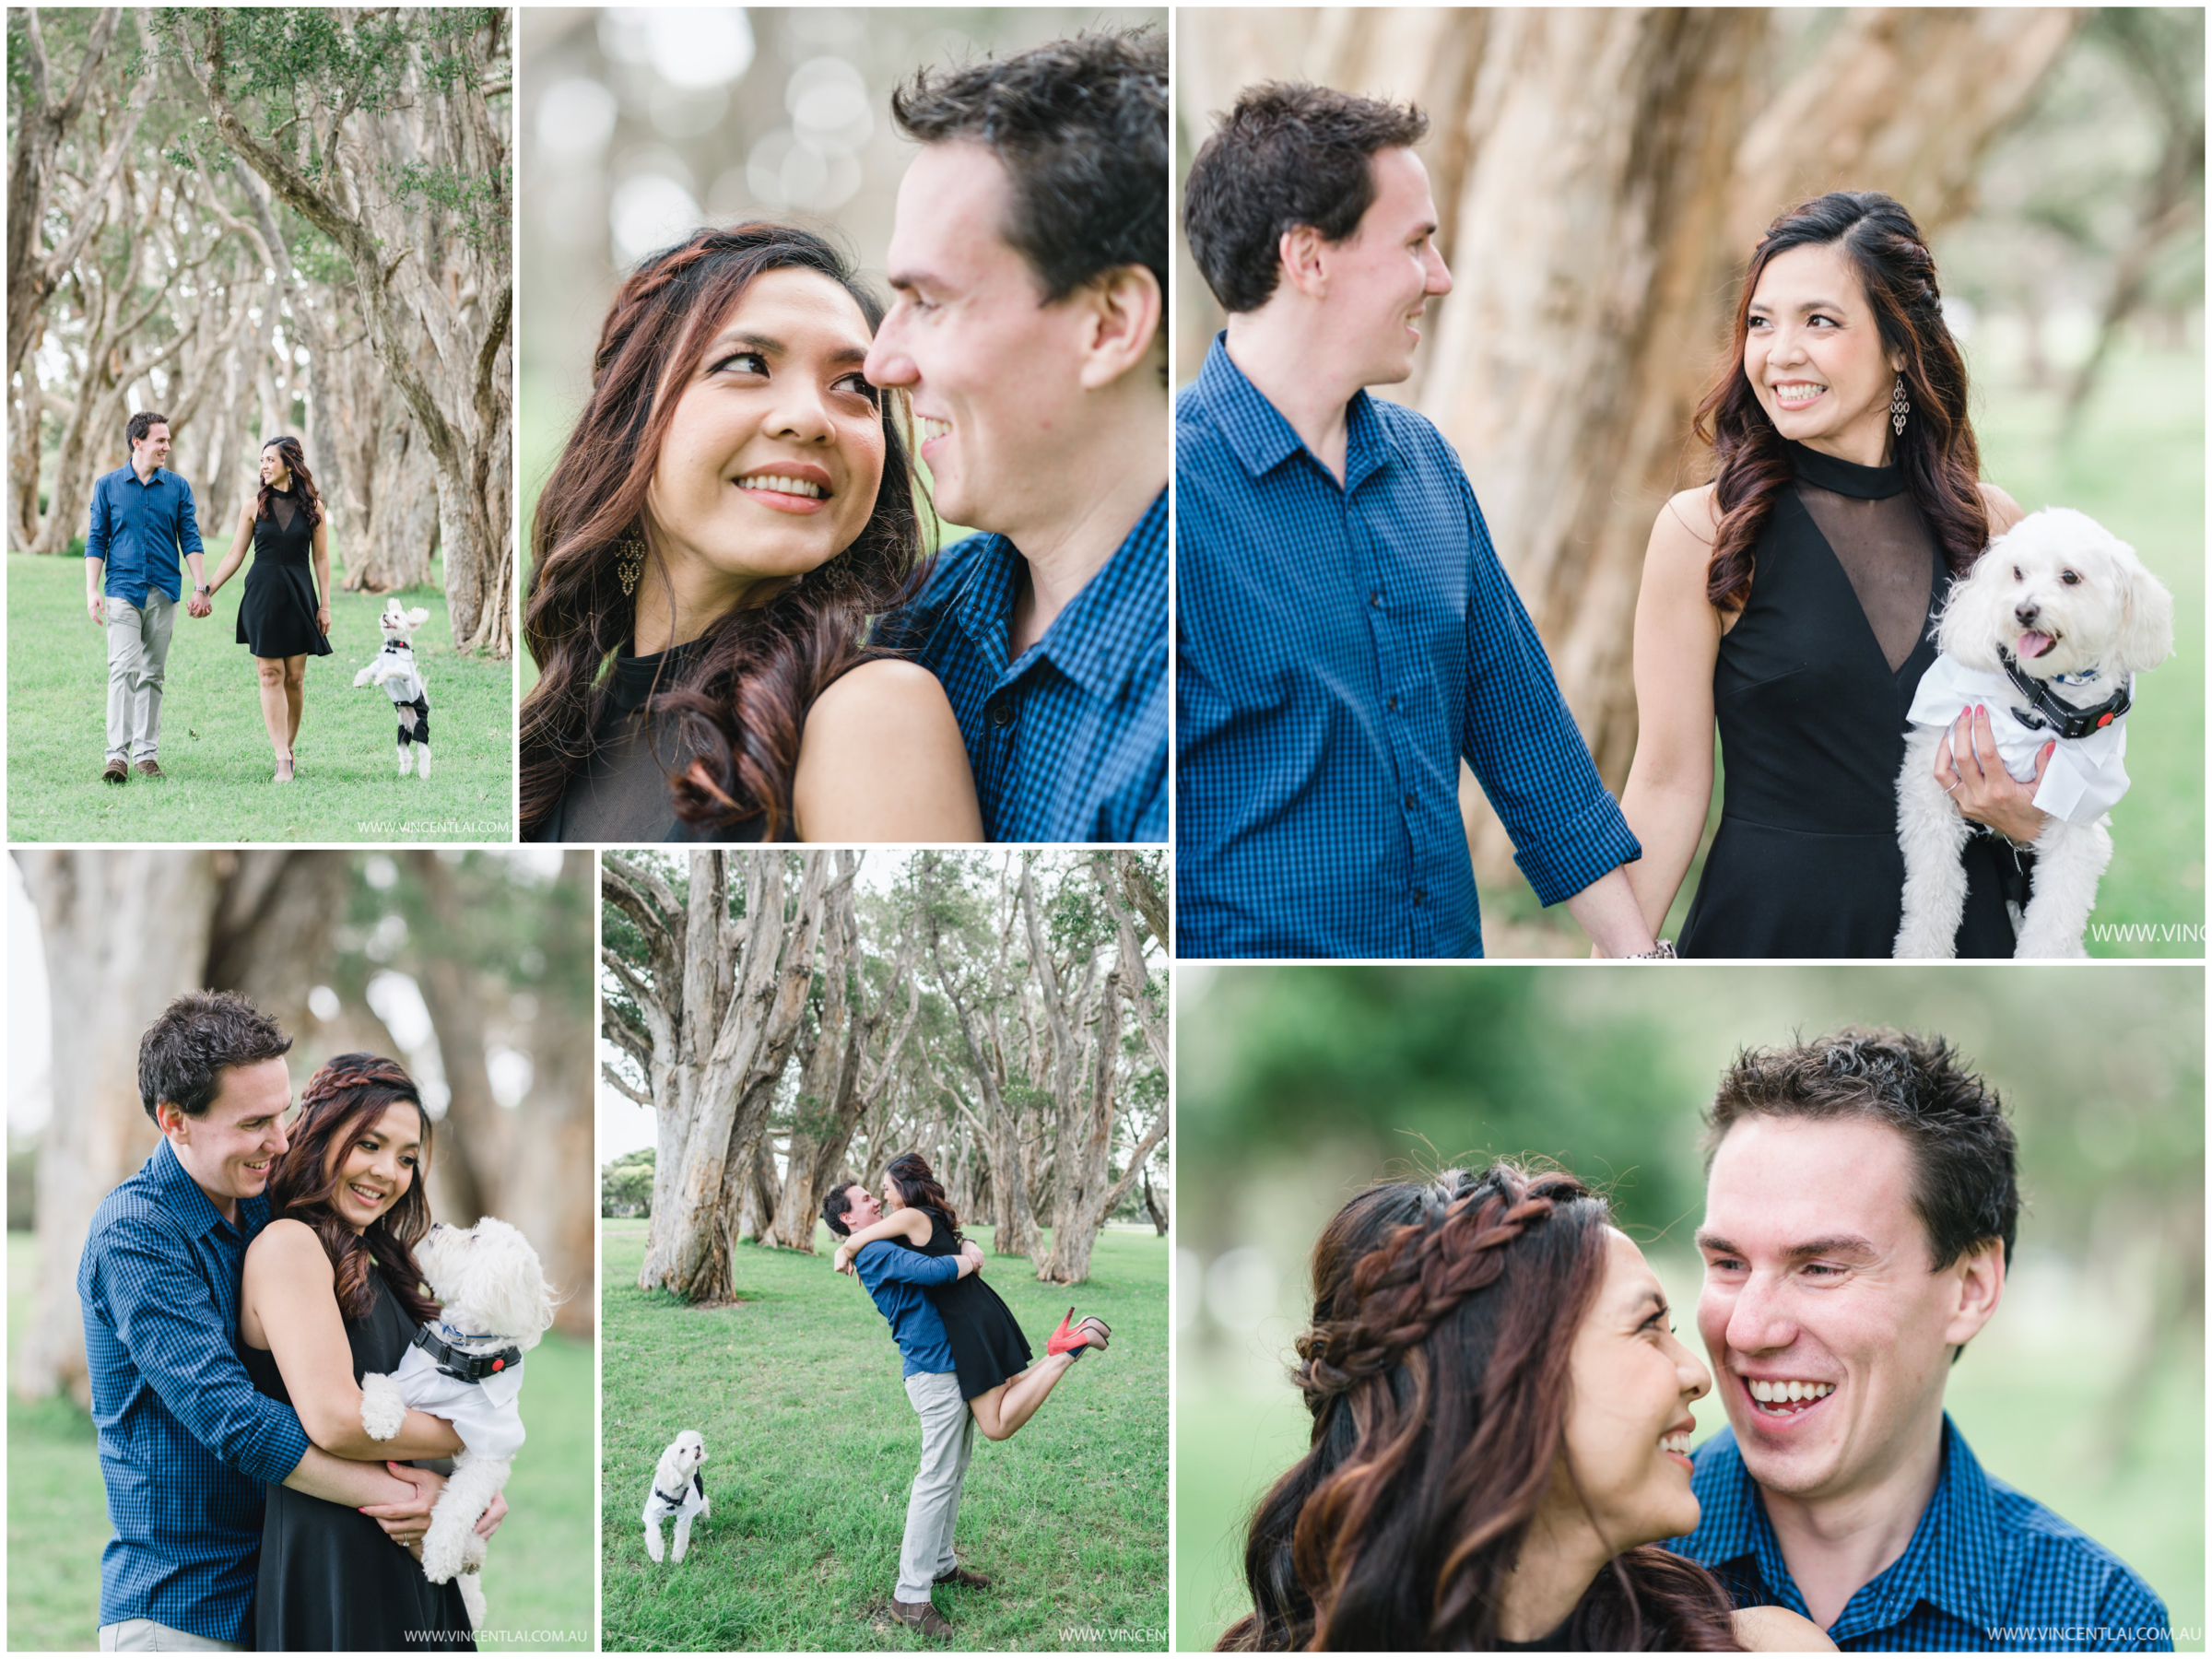 Engagement Session Photos at Centennial Parkland